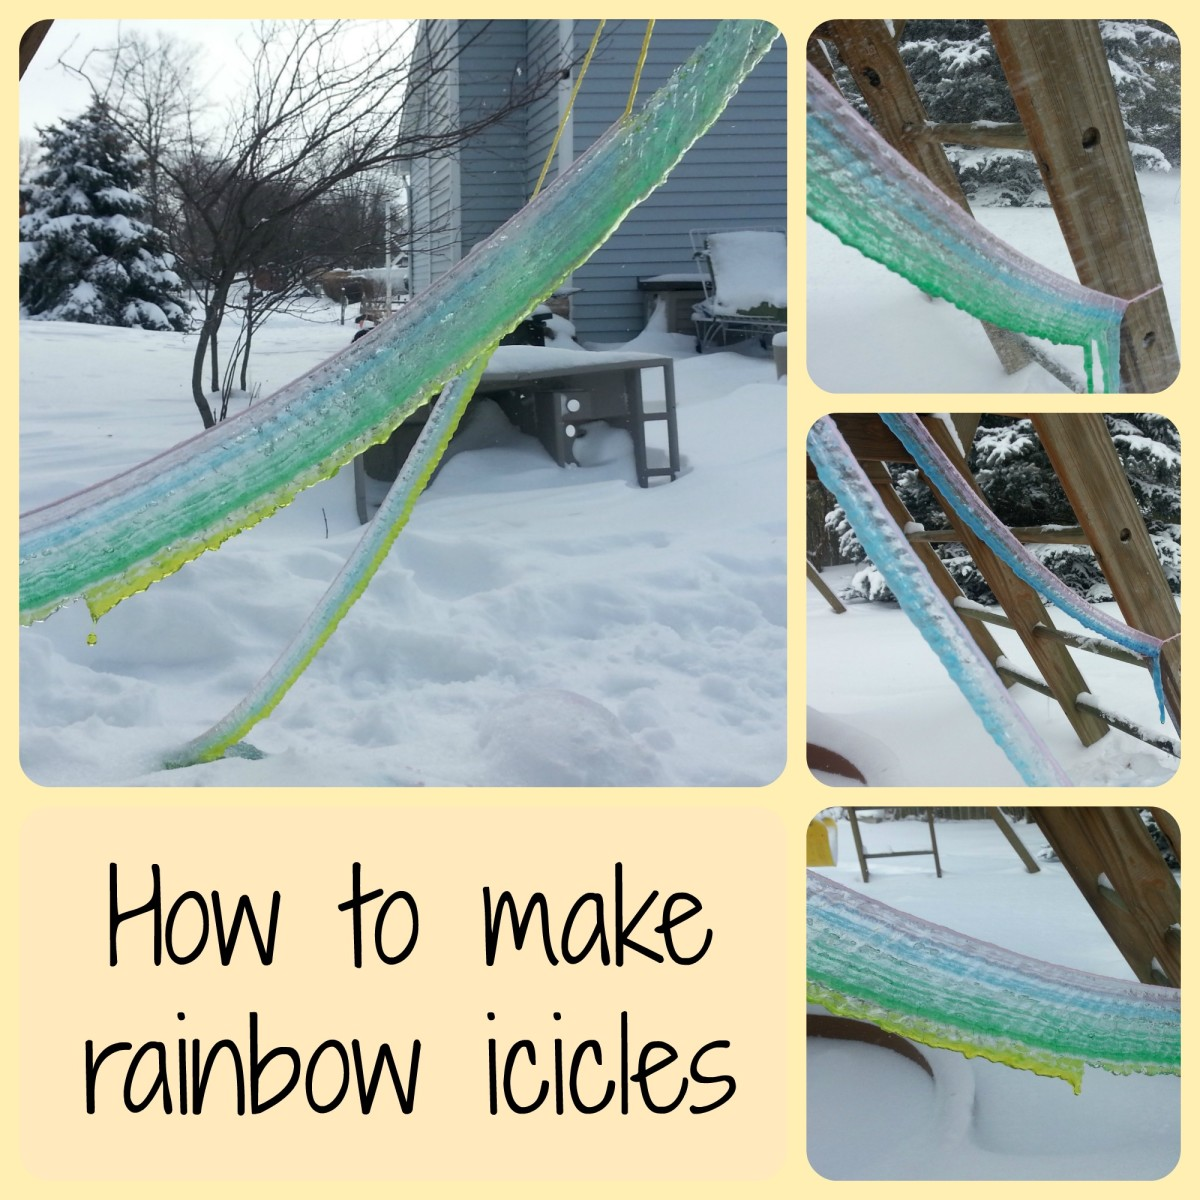 Ice Art | How to Make Rainbow Icicles